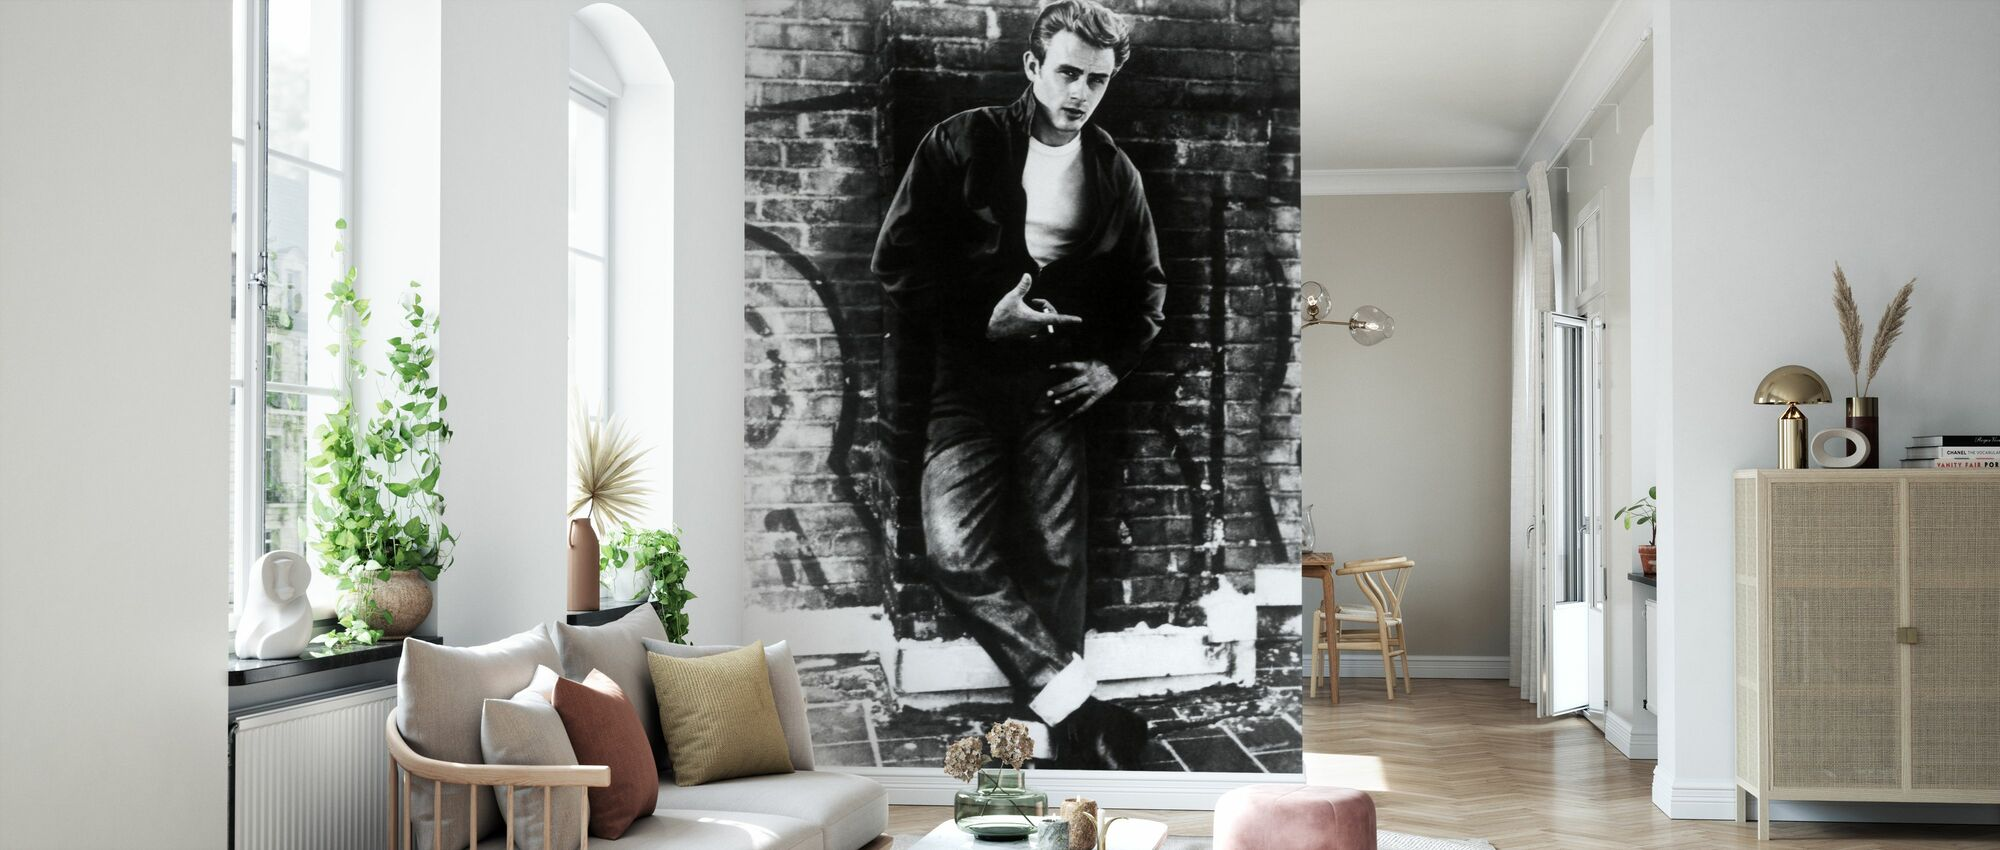 James Dean in Rebel Without a Cause - Wallpaper - Living Room